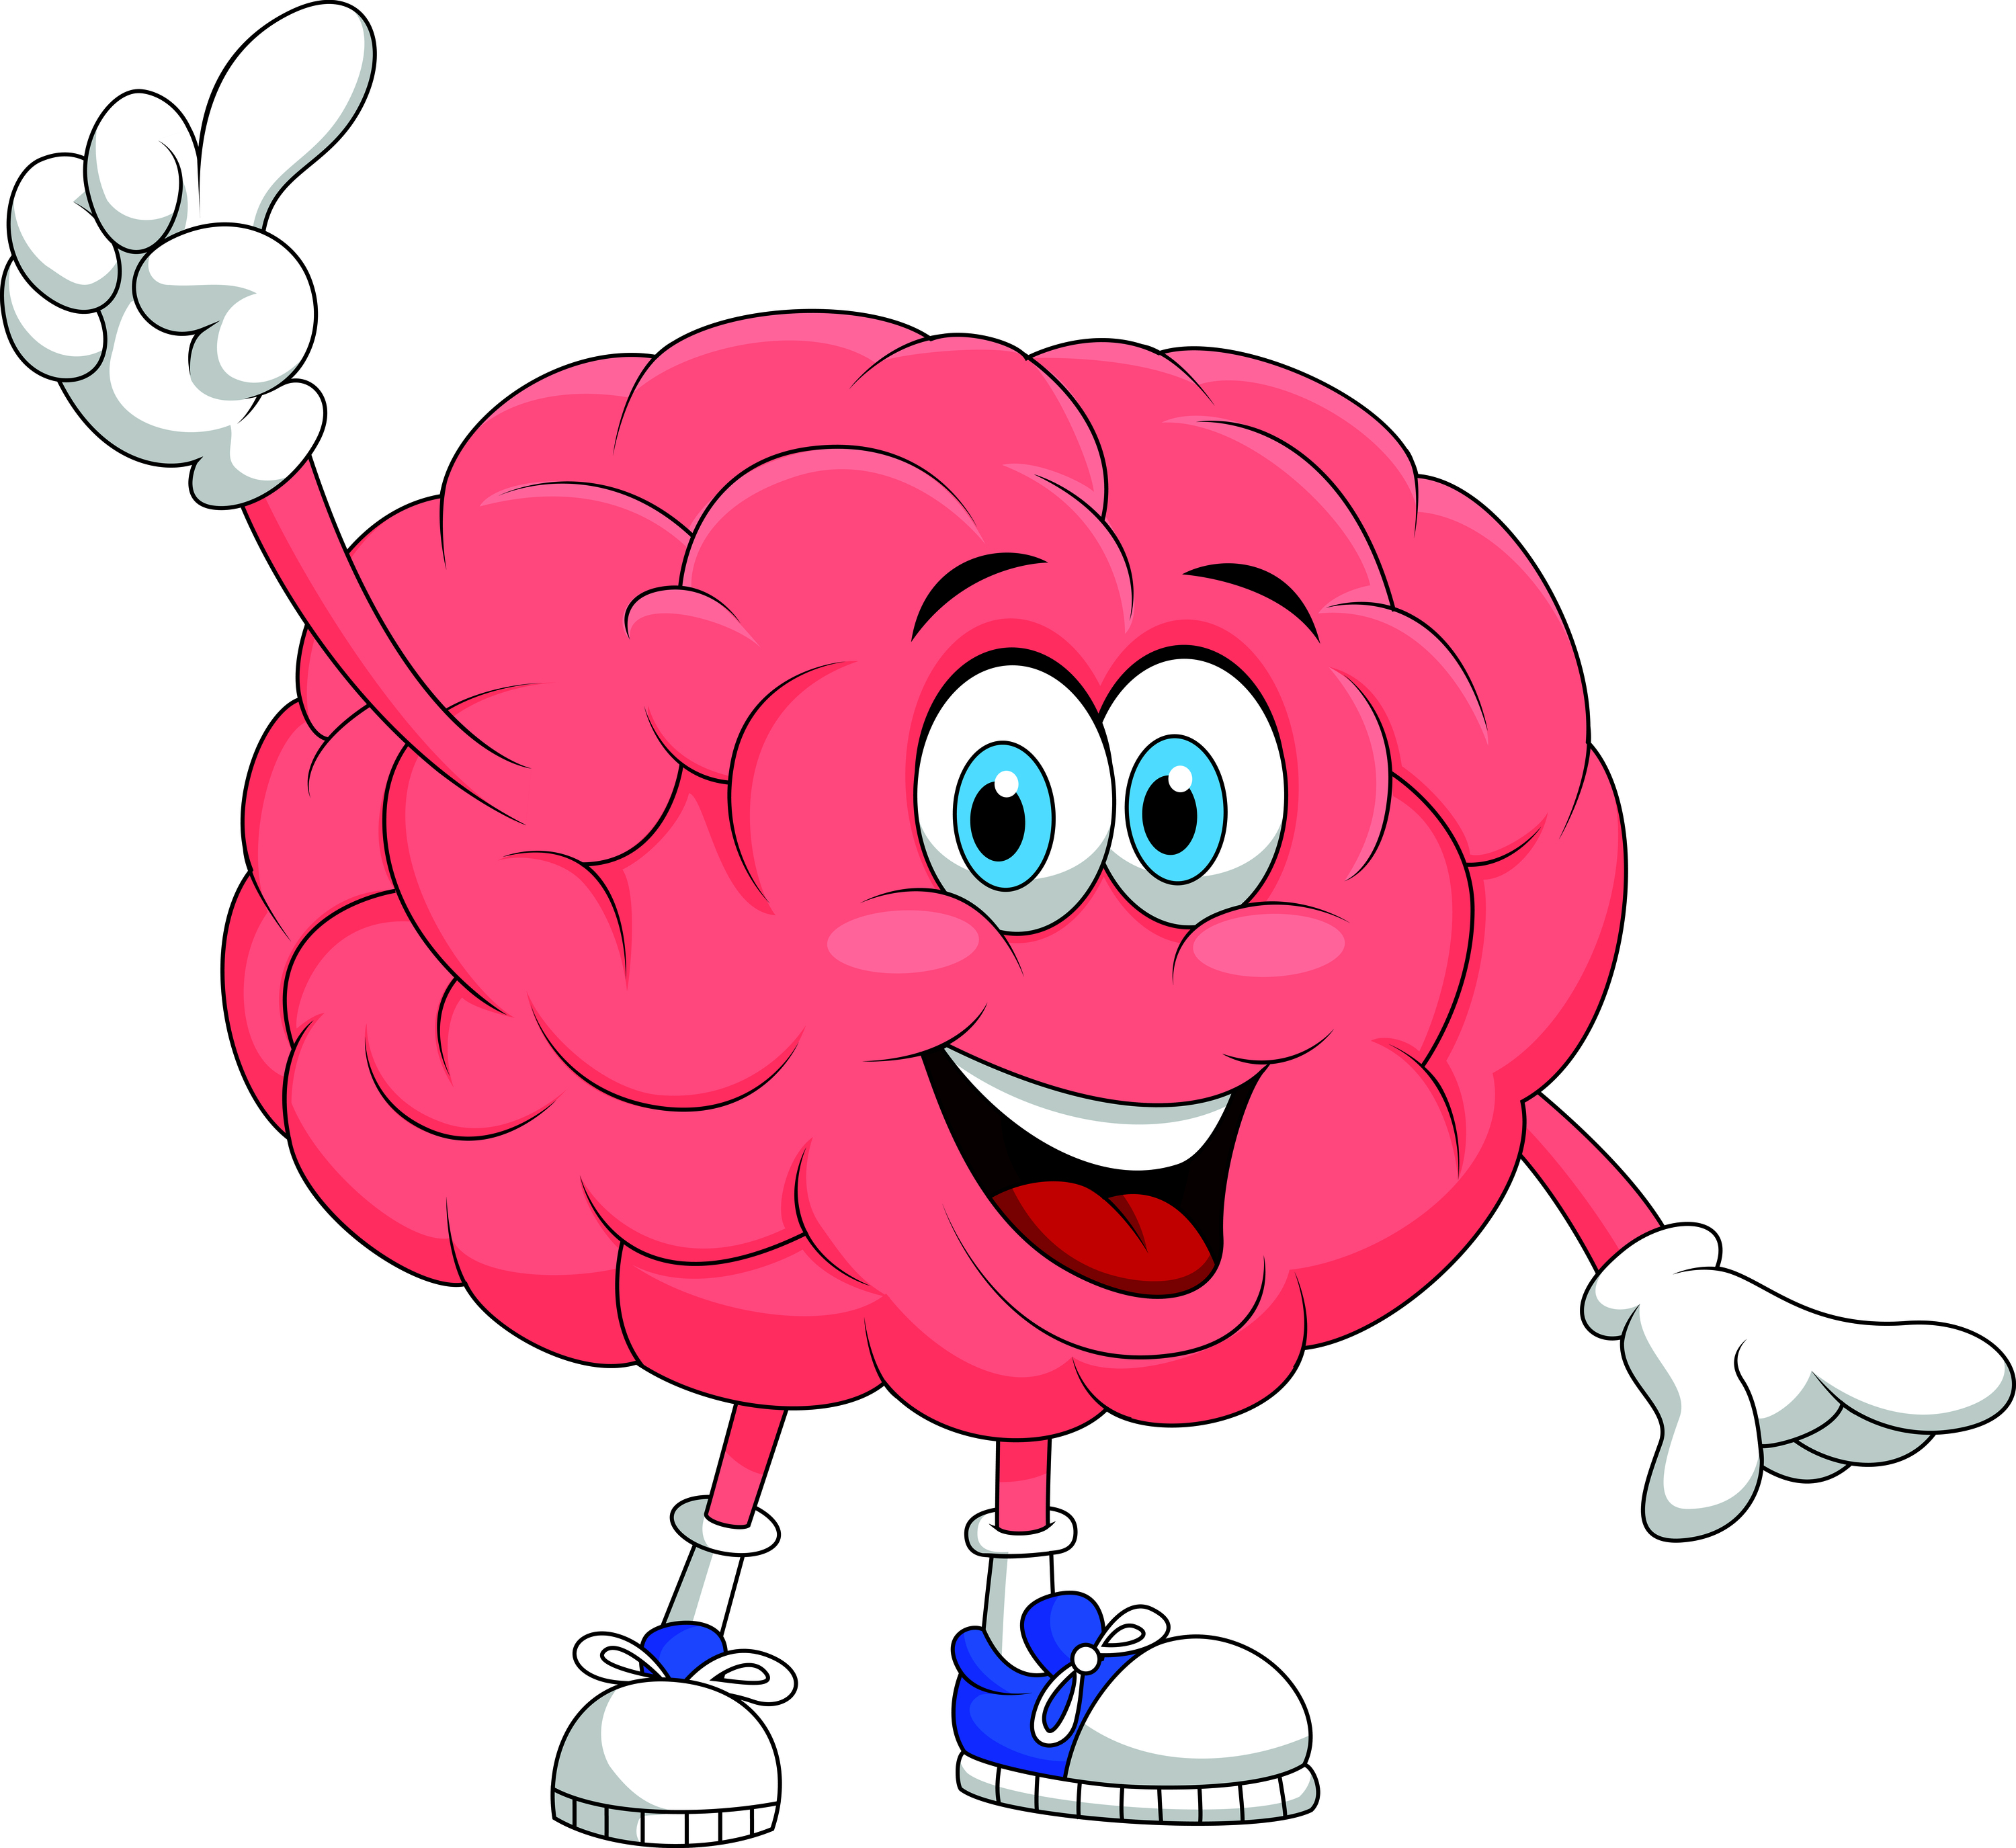 Vector illustration of Cute brain cartoon character pointing